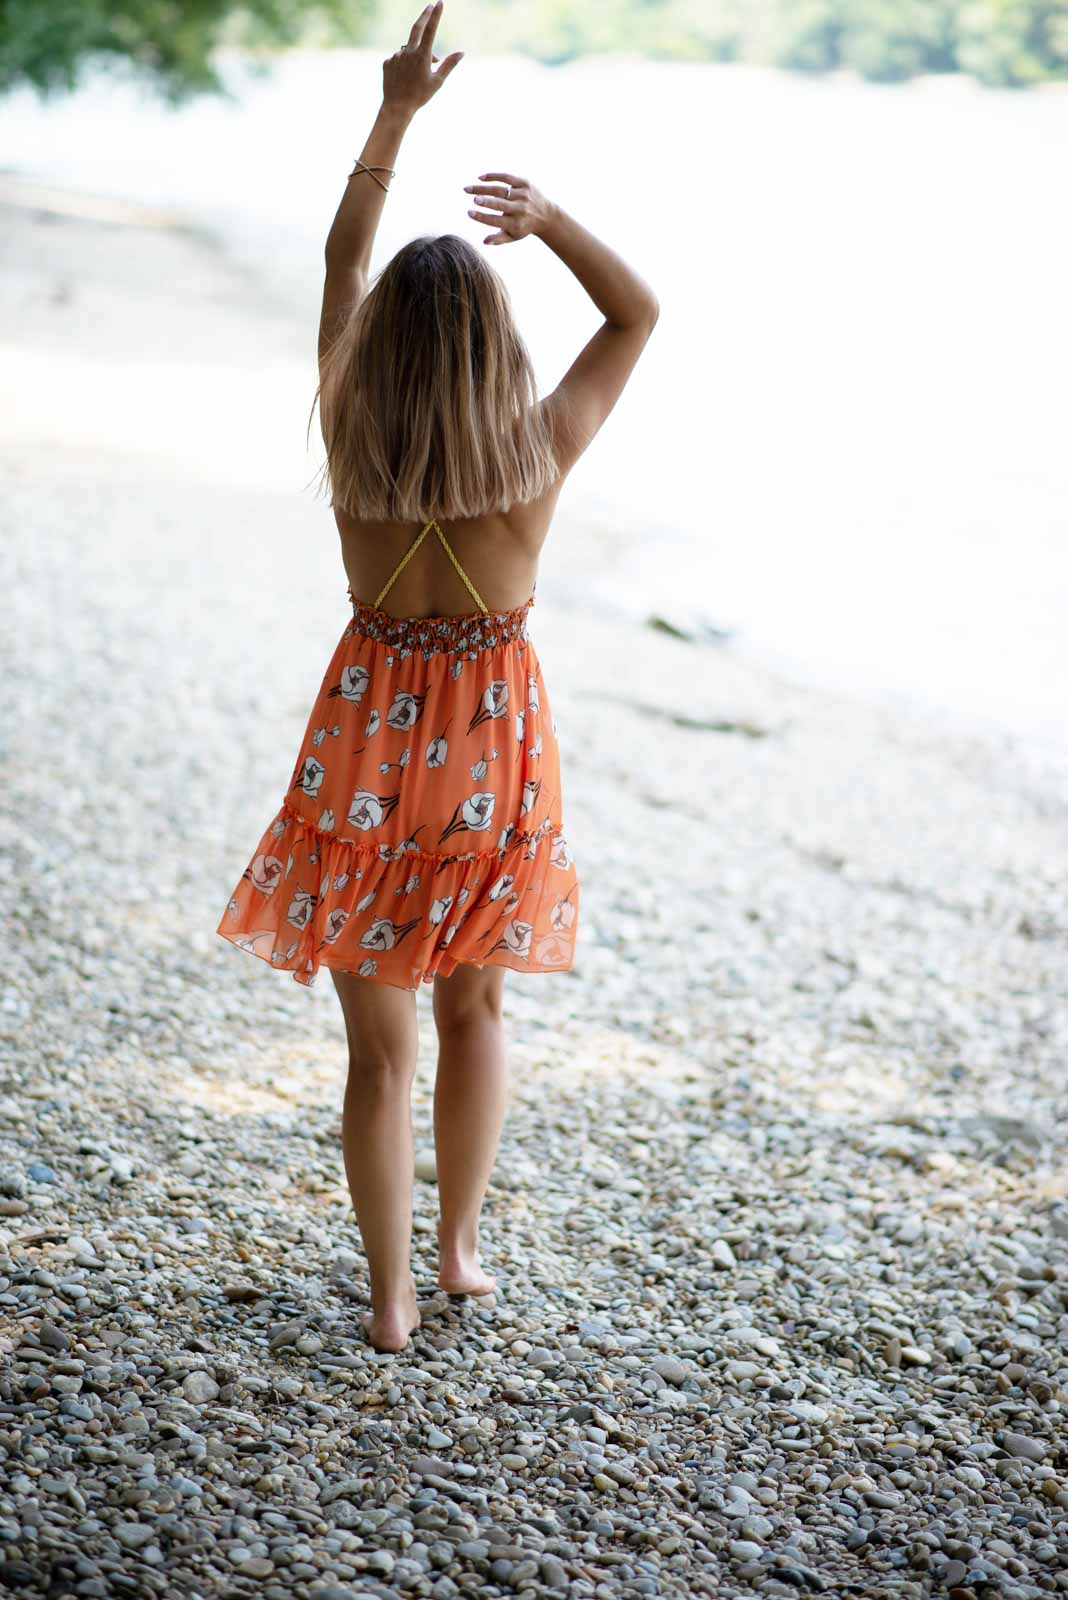 blonde girl on beach wearing orange dress